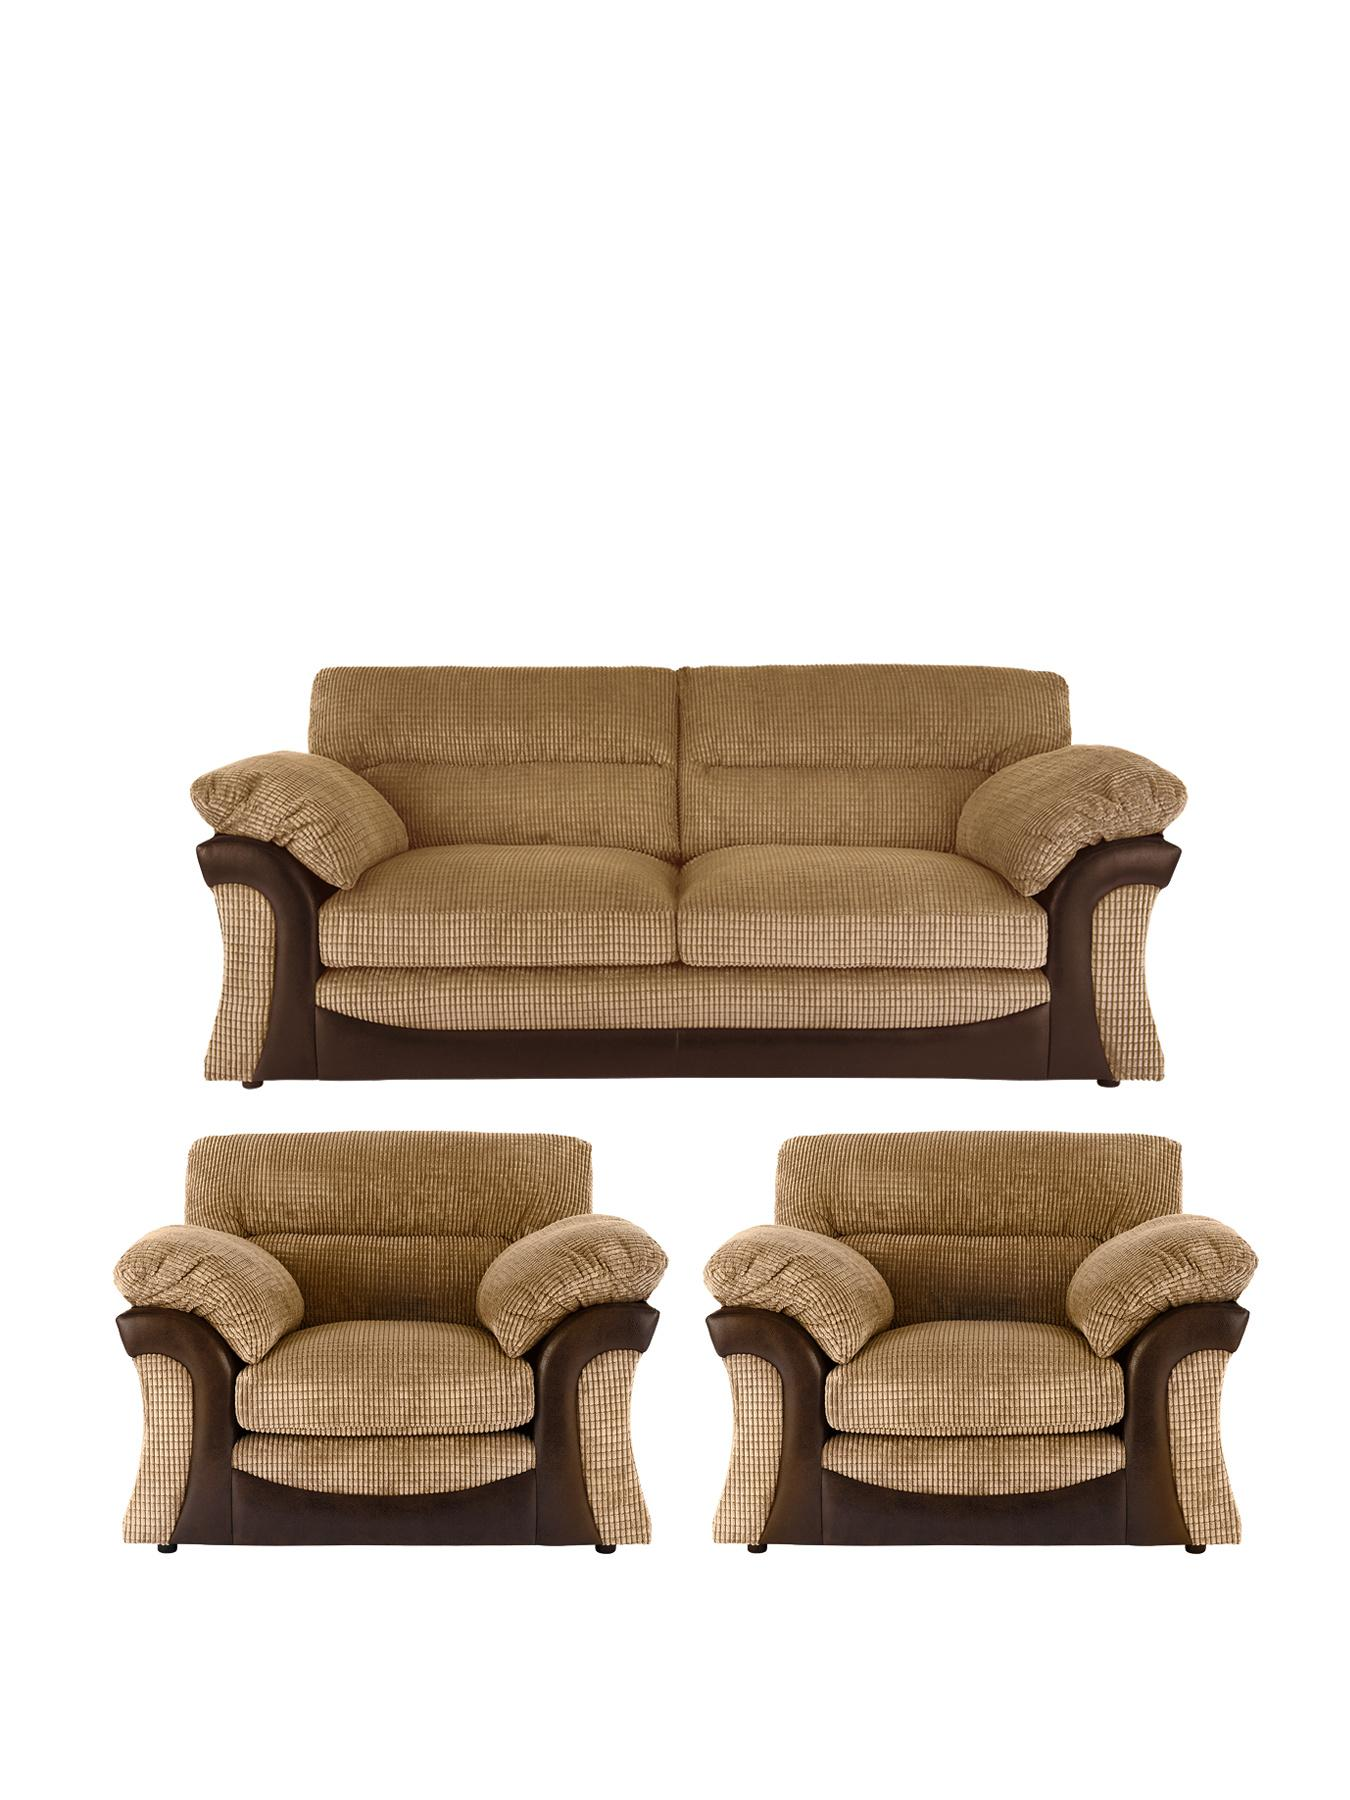 Rapide 3-Seater Sofa + 2 Chairs - Chocolate, Chocolate,Charcoal at Very, from Littlewoods